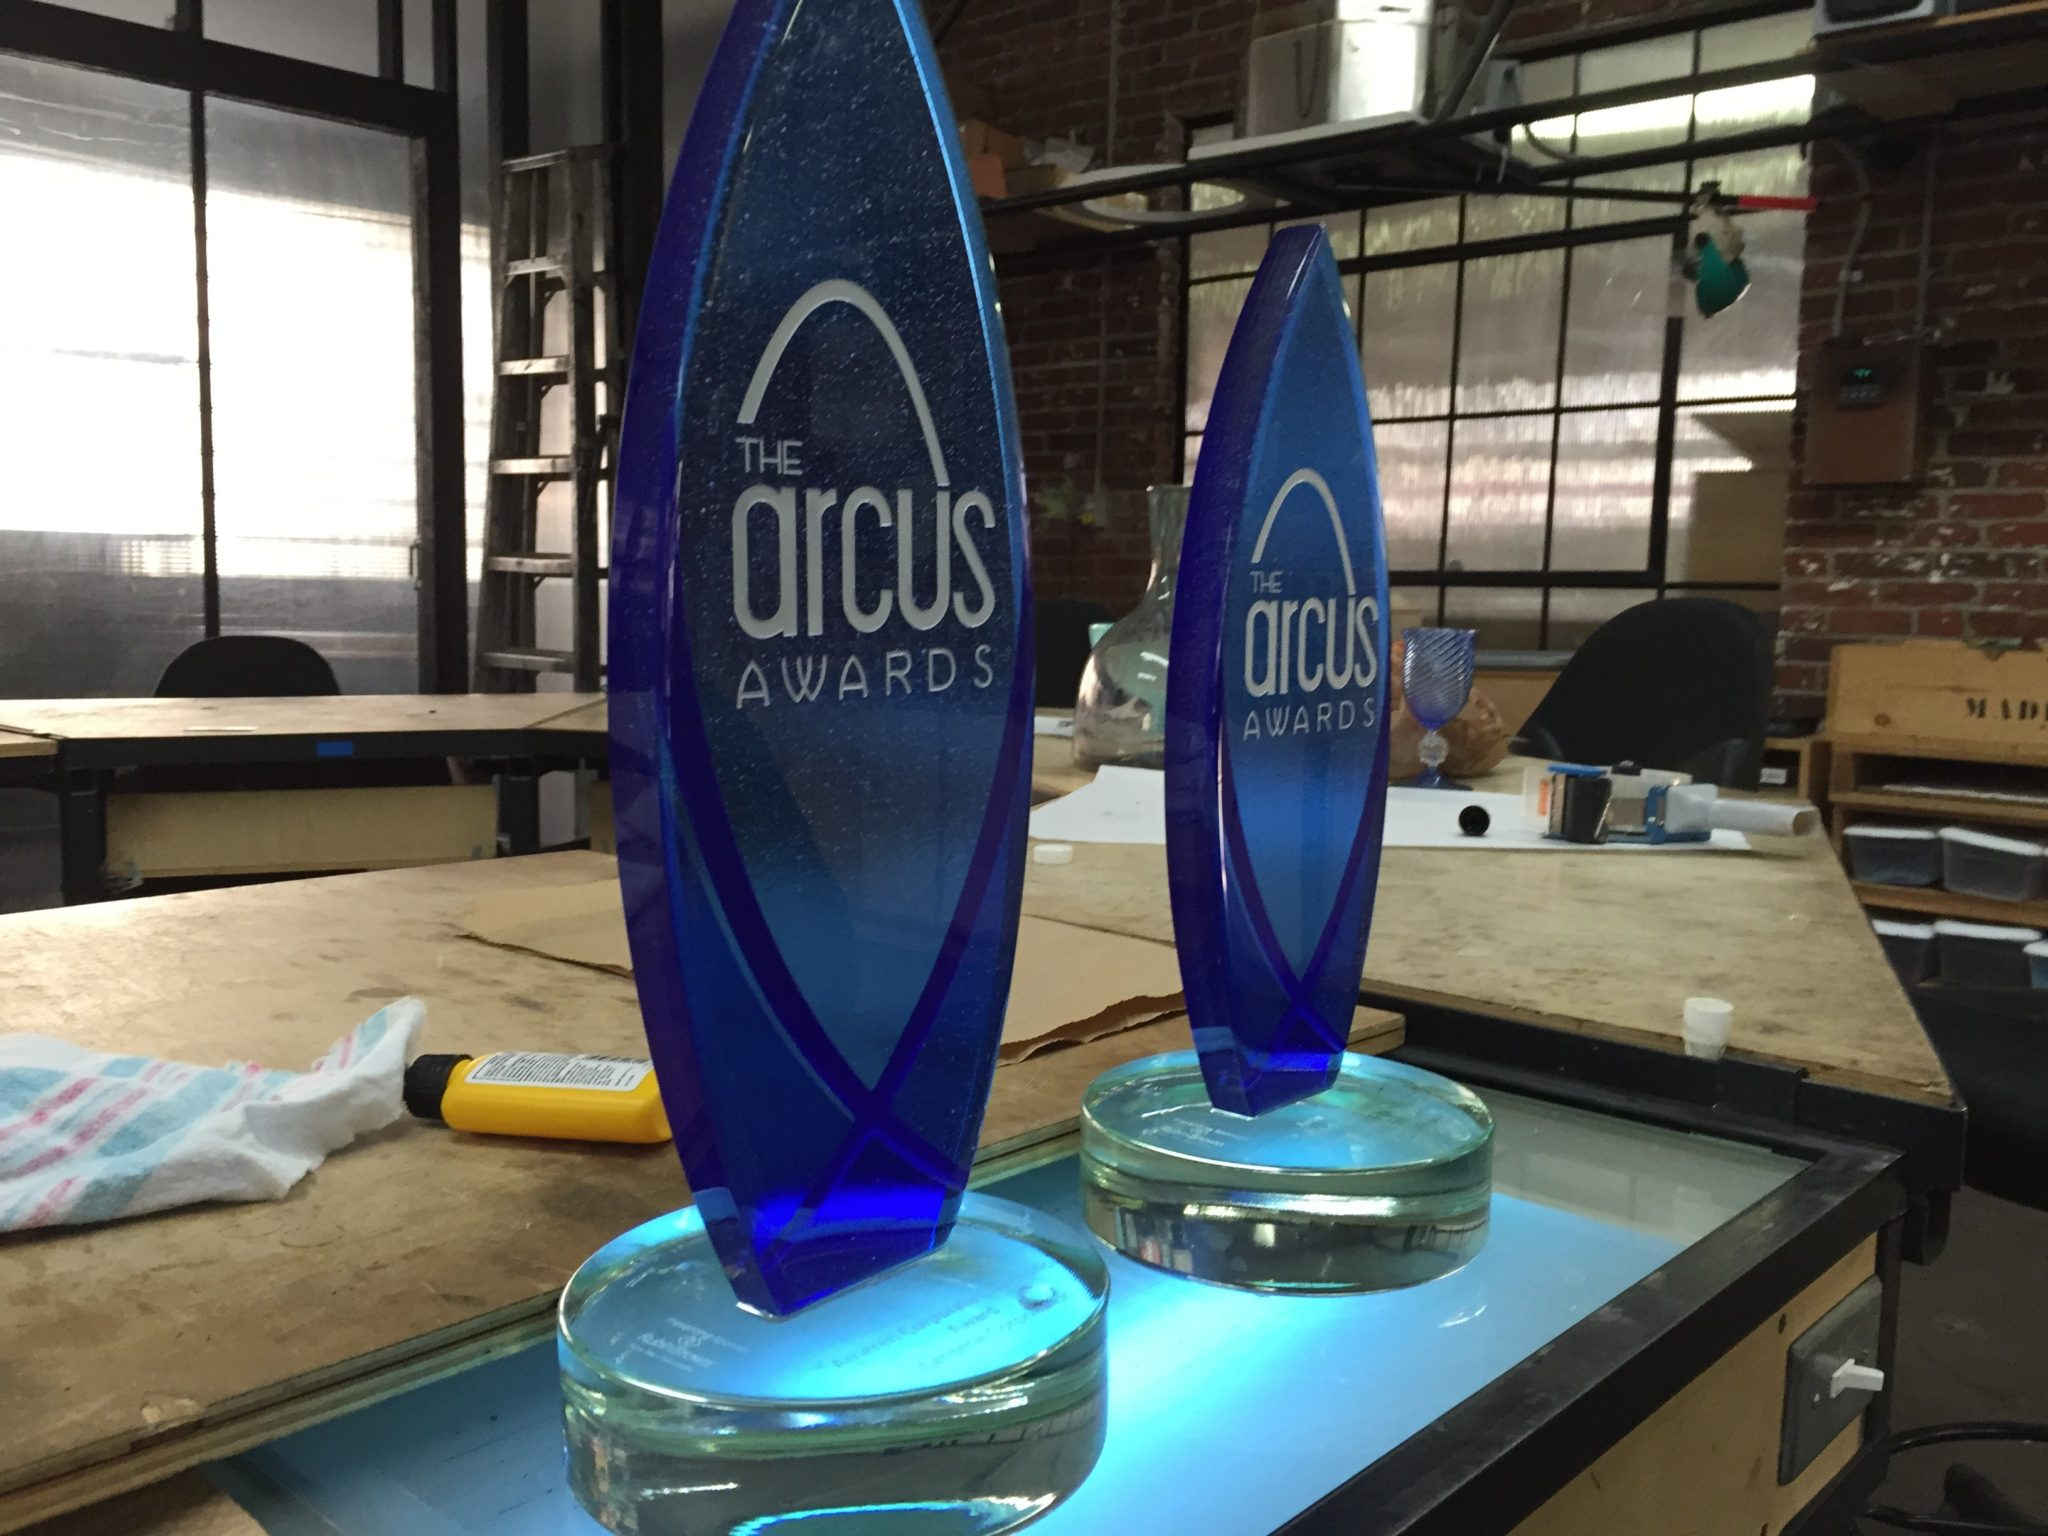 Third Degree Handmade Glass Awards featured at Arcus Awards